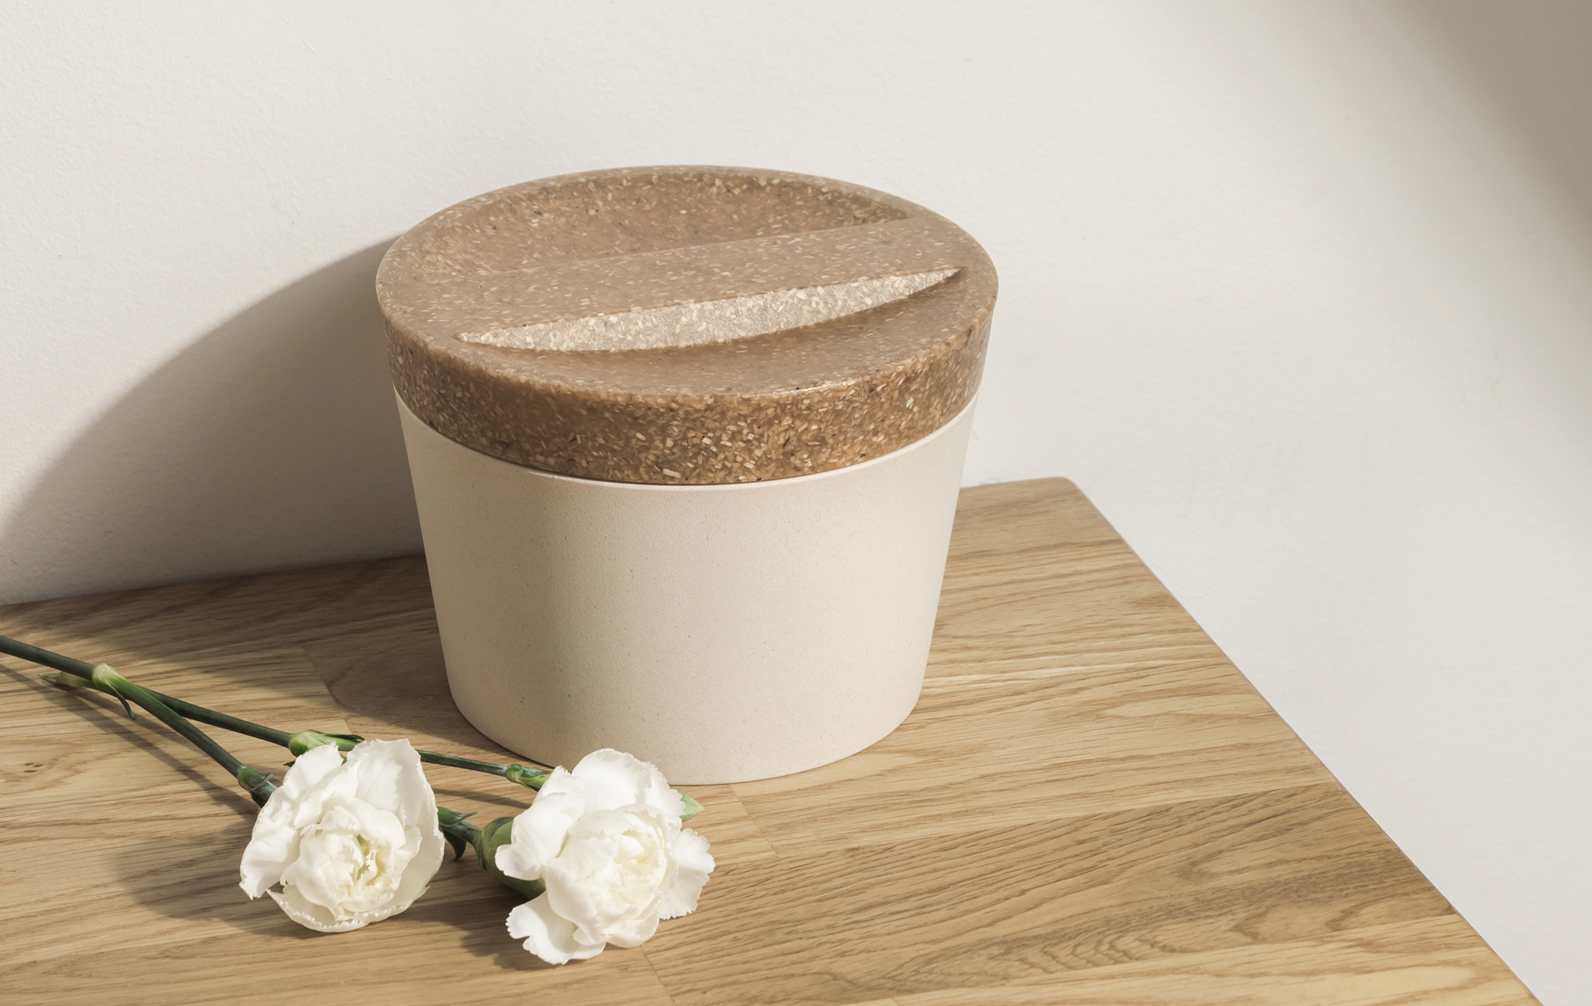 Eco-friendly pet urn made of Sulapac Universal material